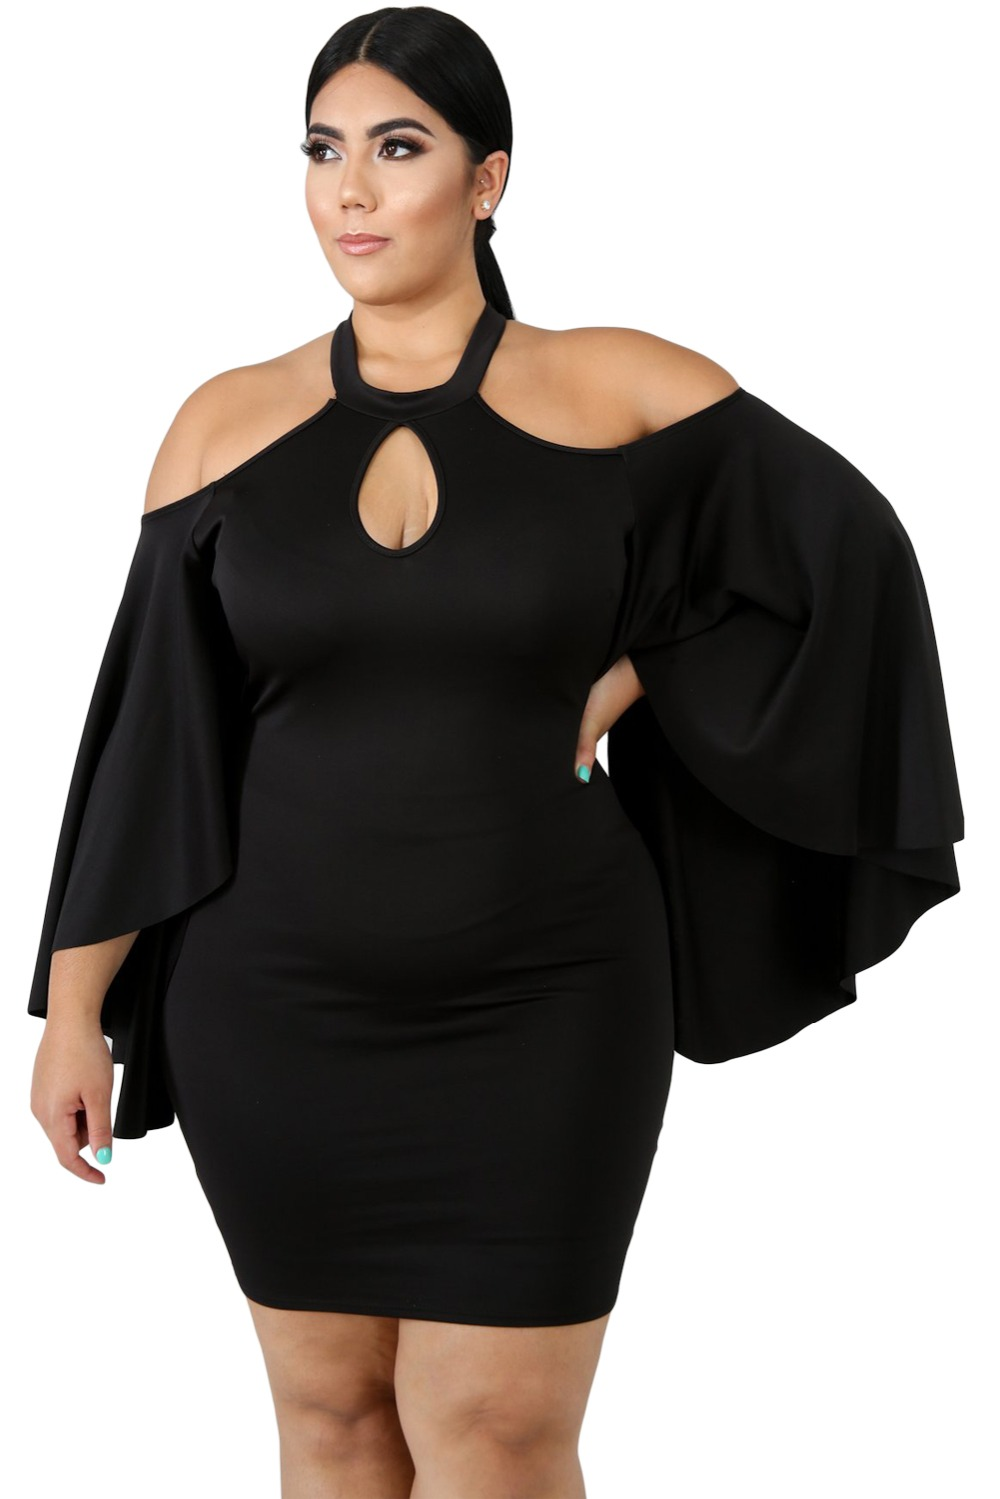 Black-Plus-Size-Cold-Shoulder-Bell-Sleeve-Bodycon-Dress-LC610521-2-1